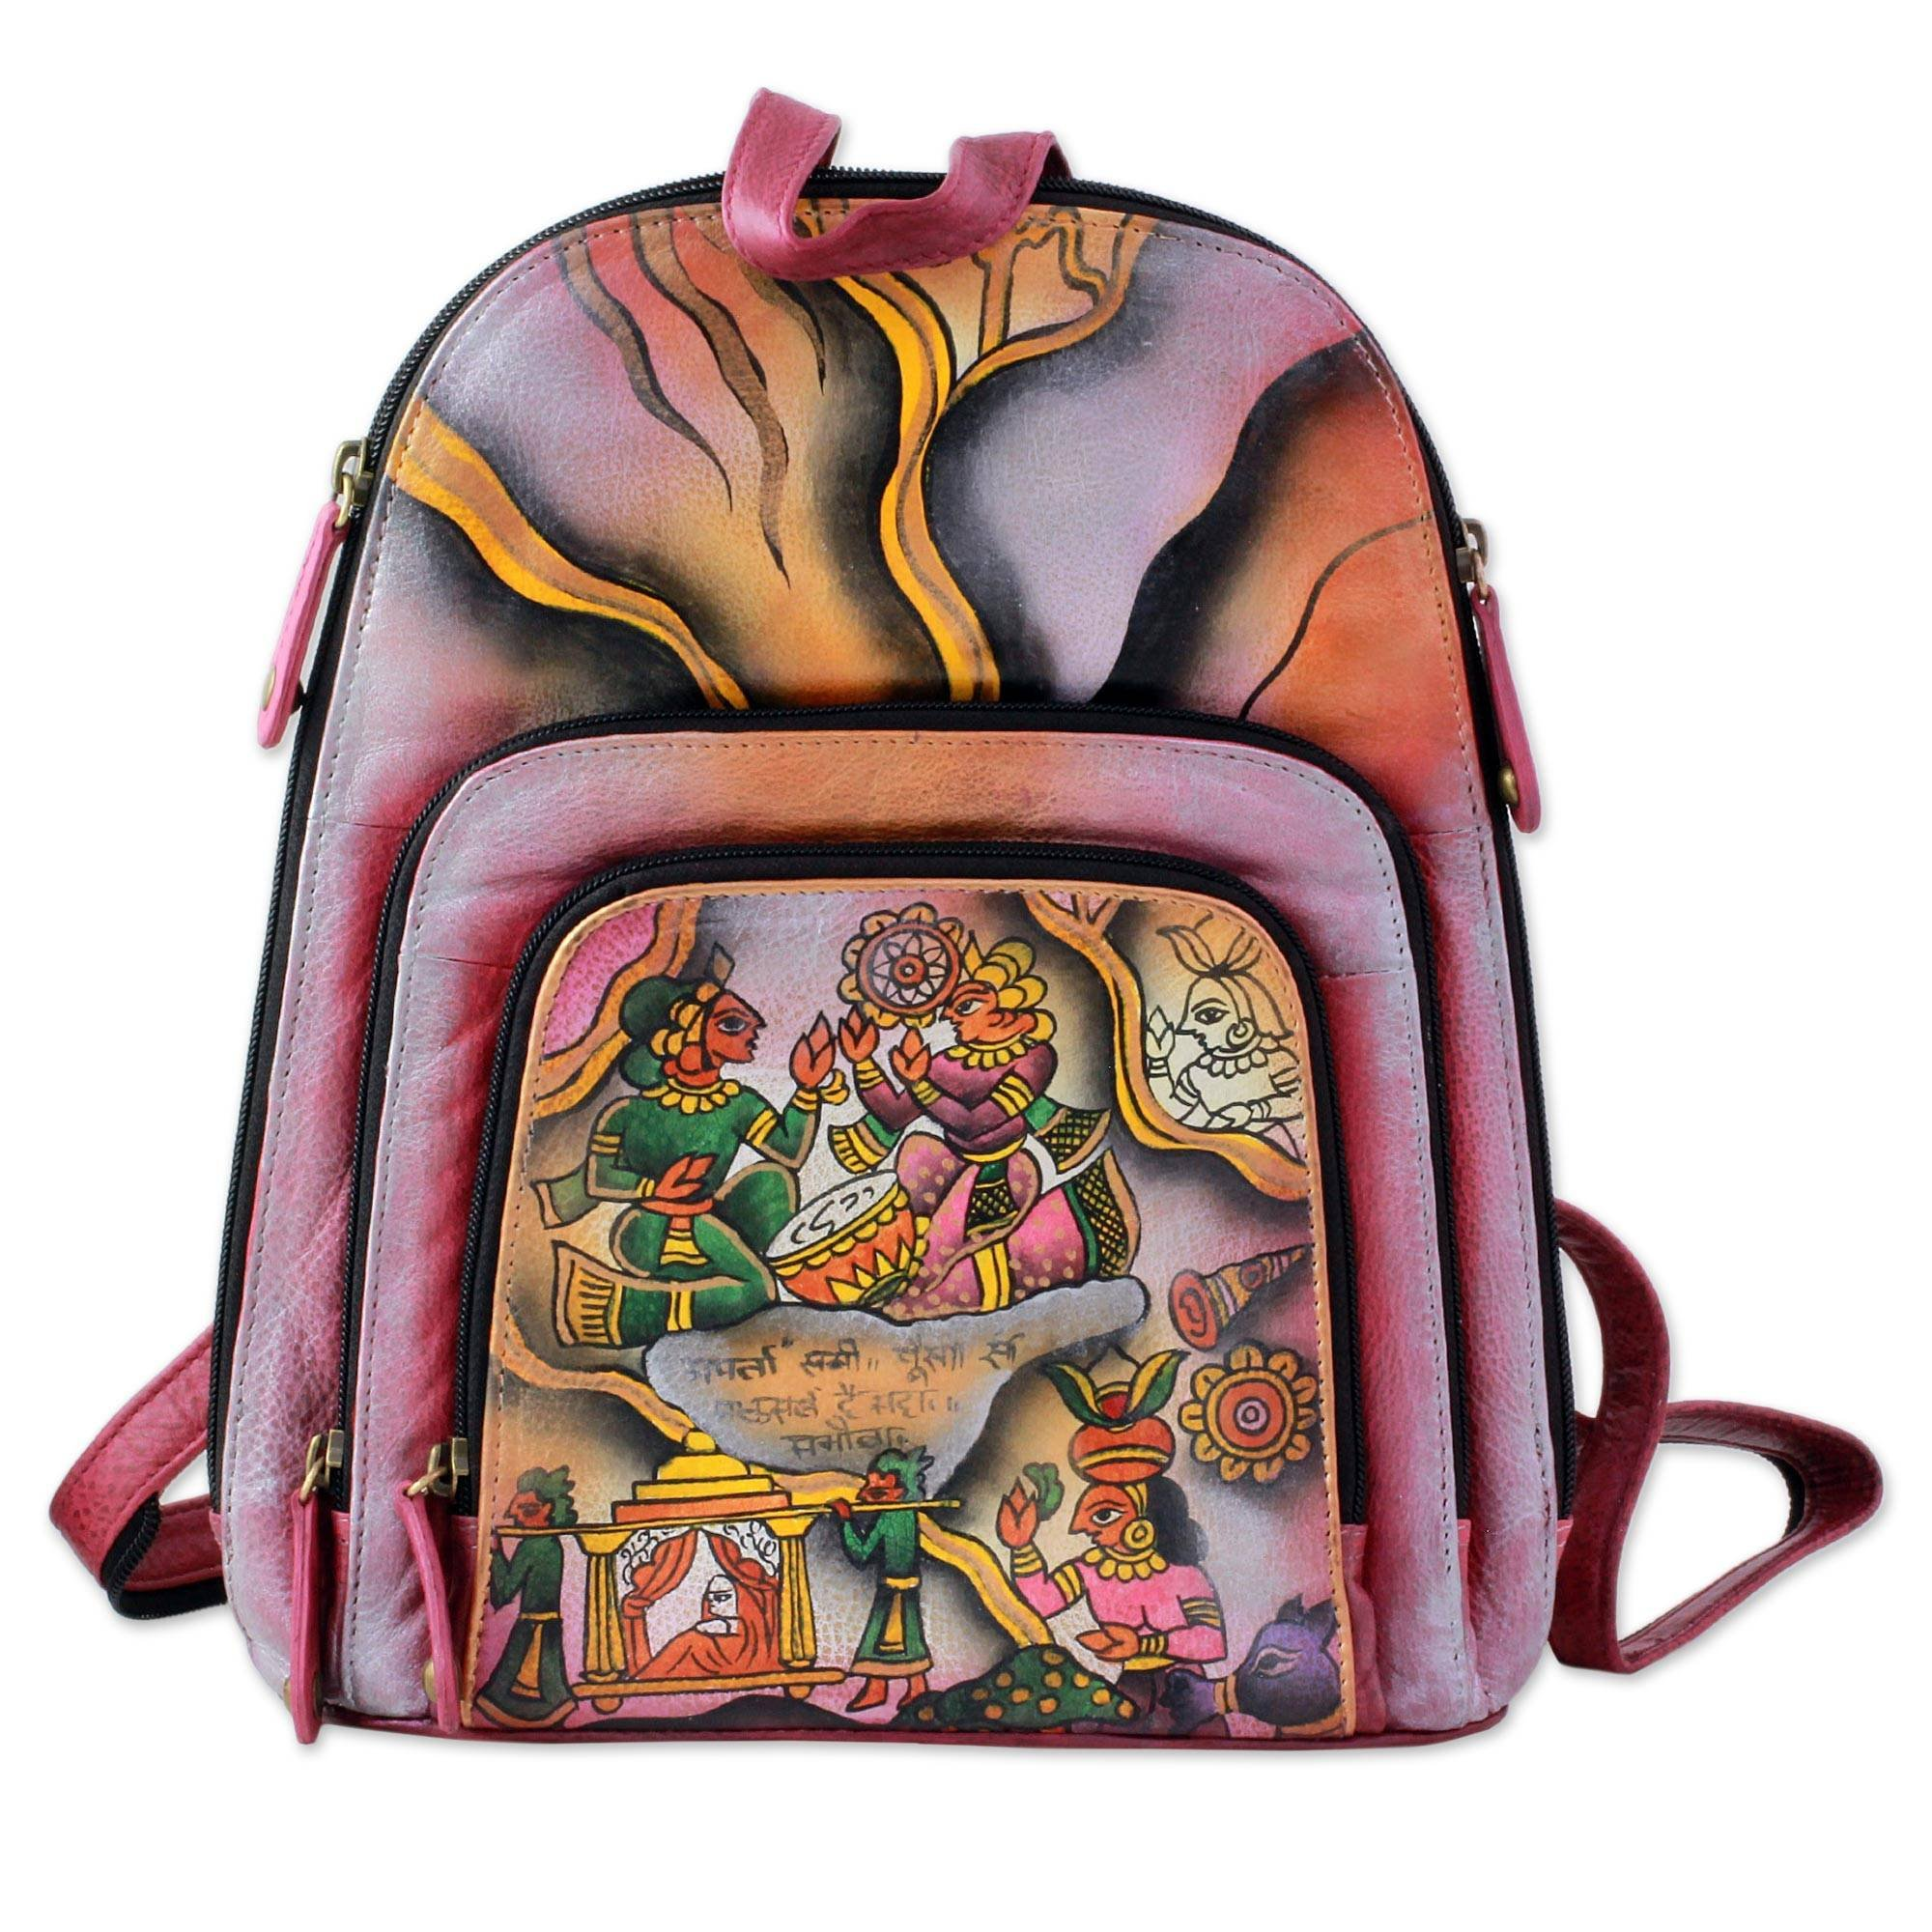 NOVICA Multicolor Leather Backpack, 'Royal Court' by NOVICA